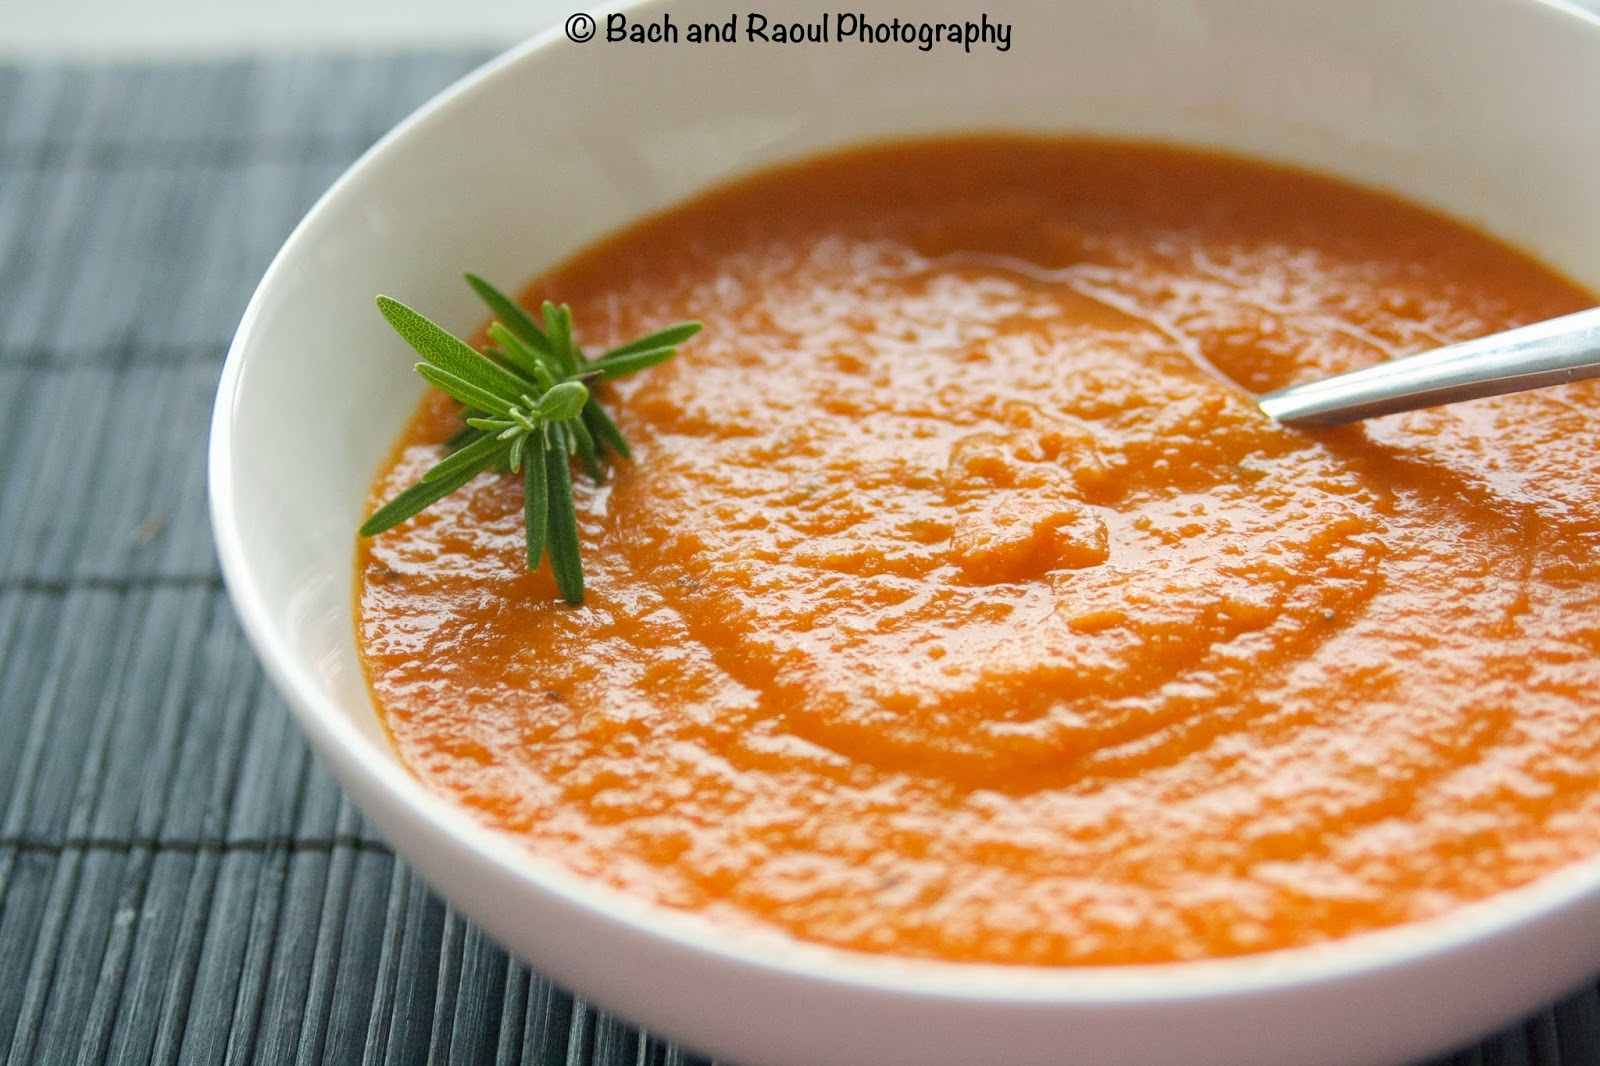 Roasted Bell Pepper and Tomato Soup with Black Pepper and Rosemary - Vegan